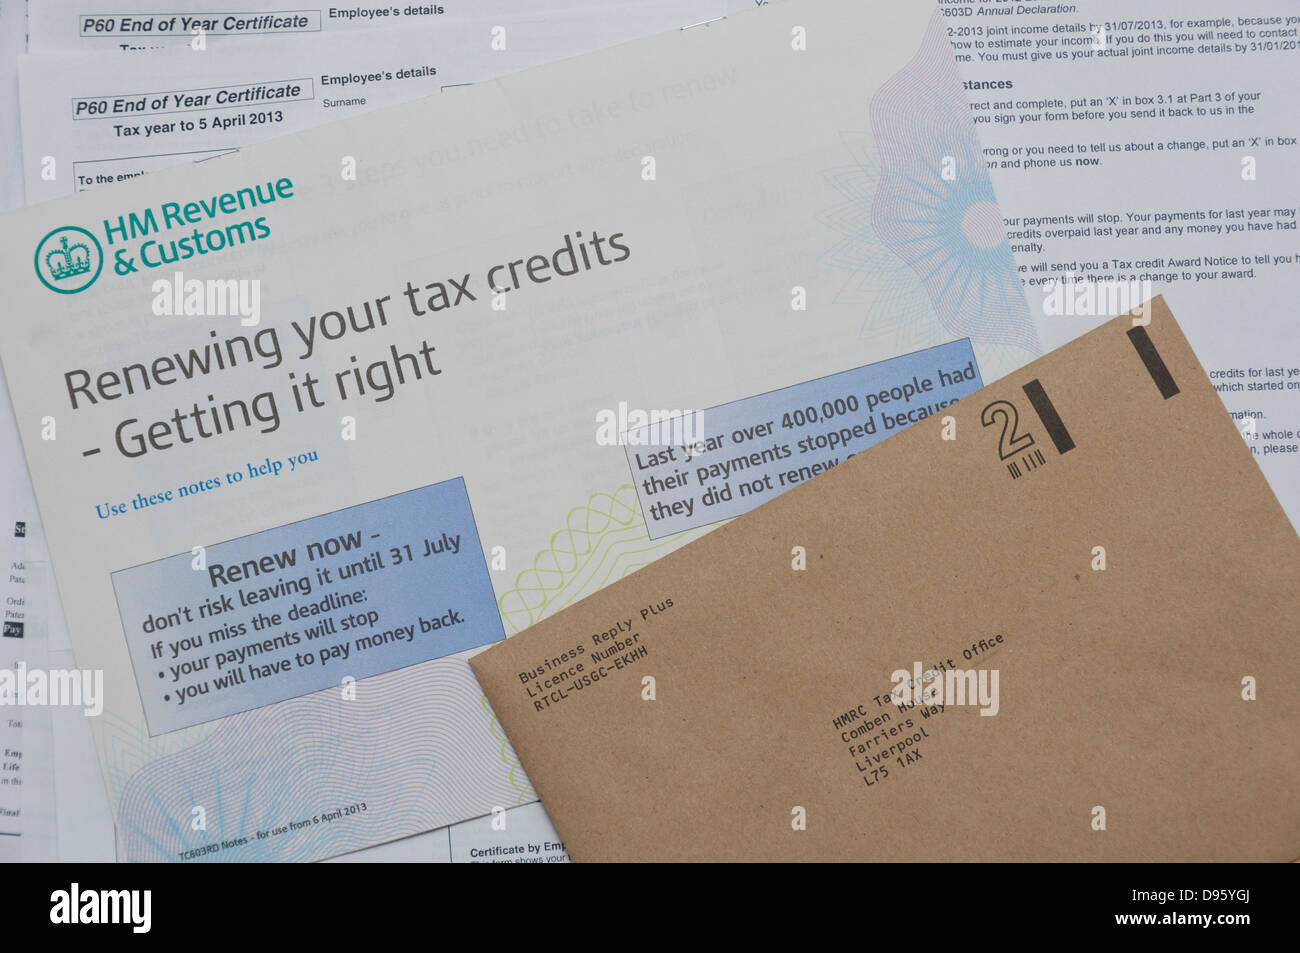 Revenue and customs changes